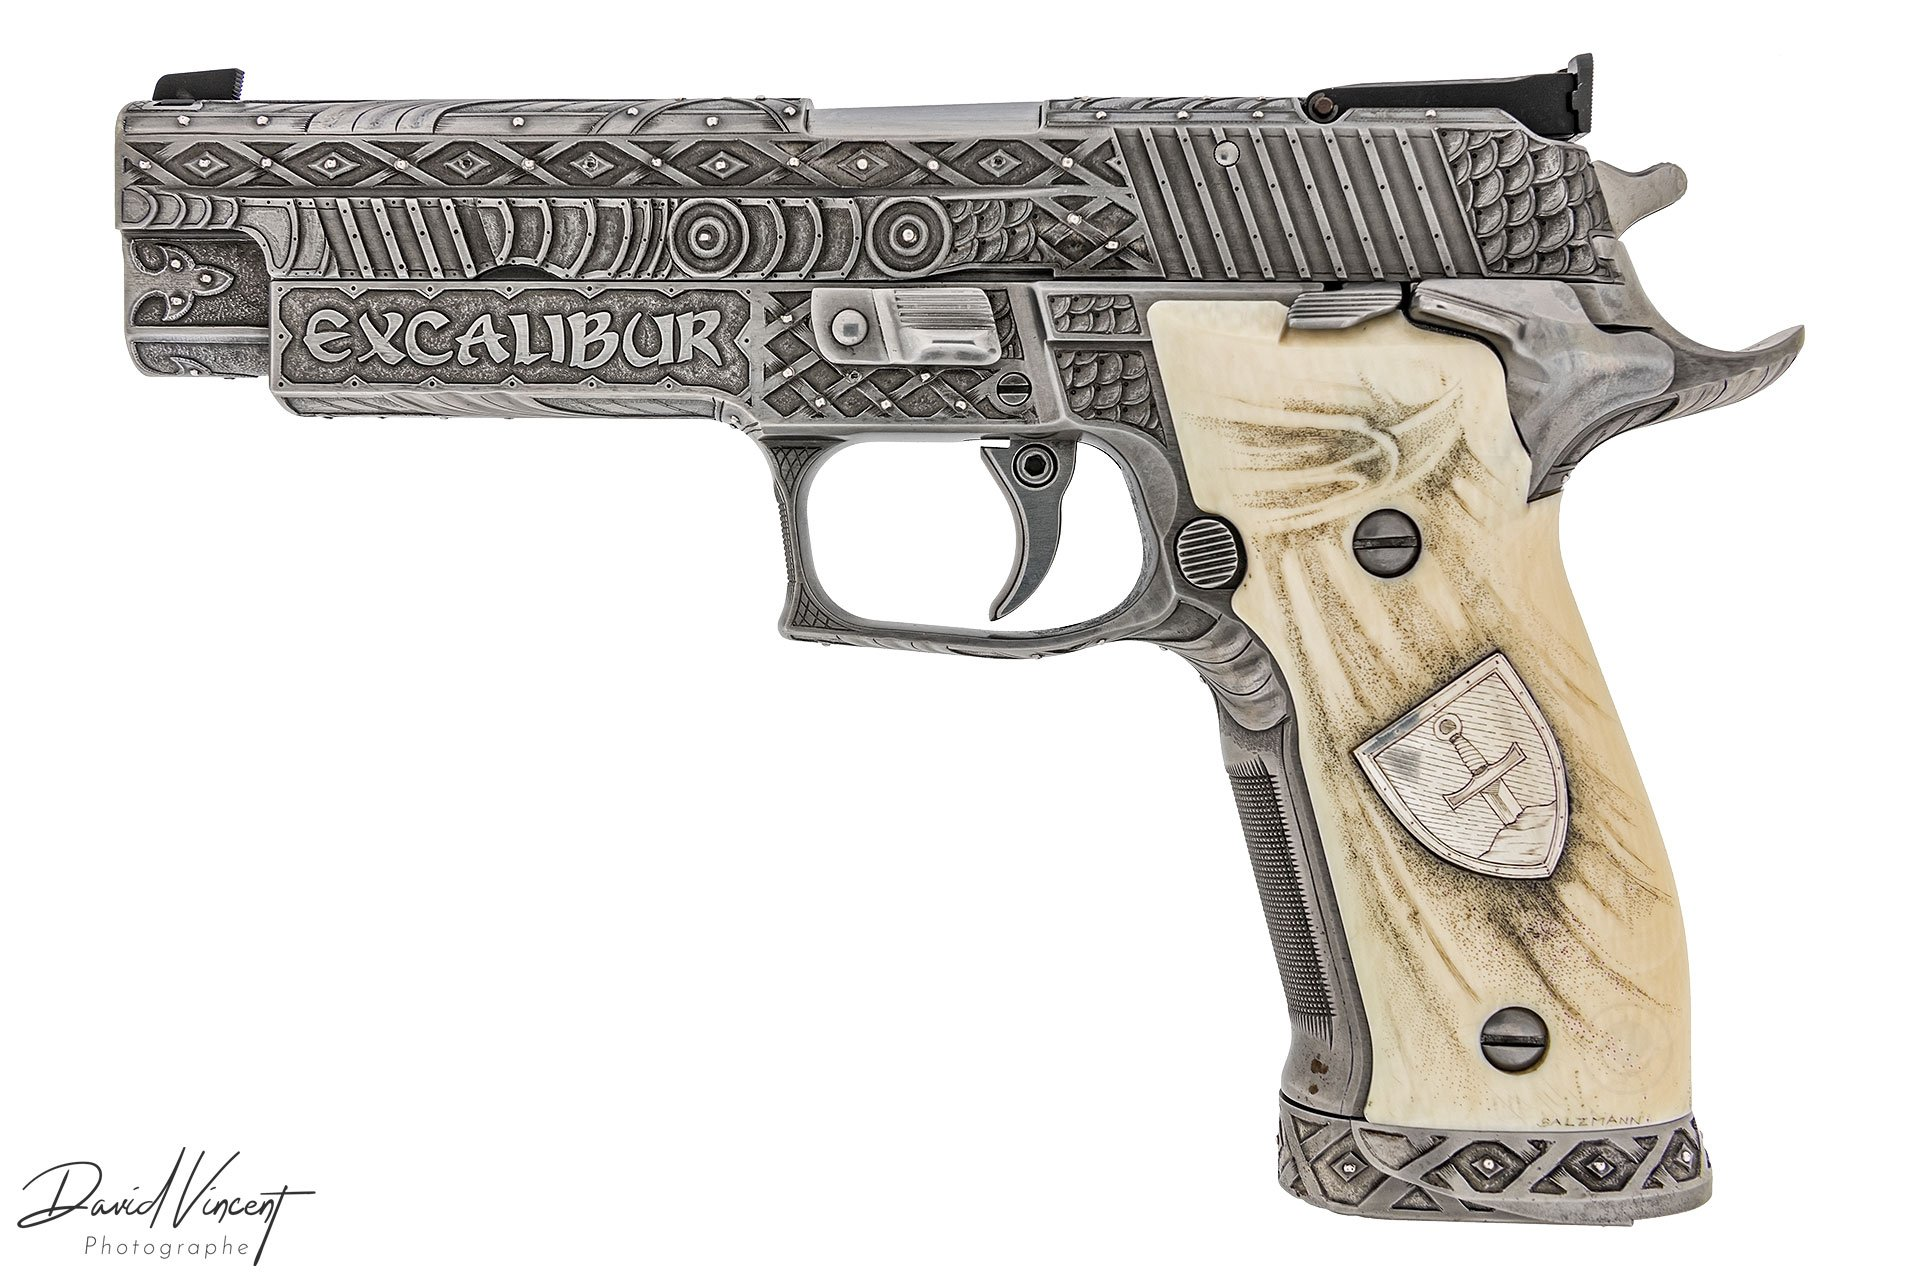 SIG P226 X-Five Excalibur Engraved